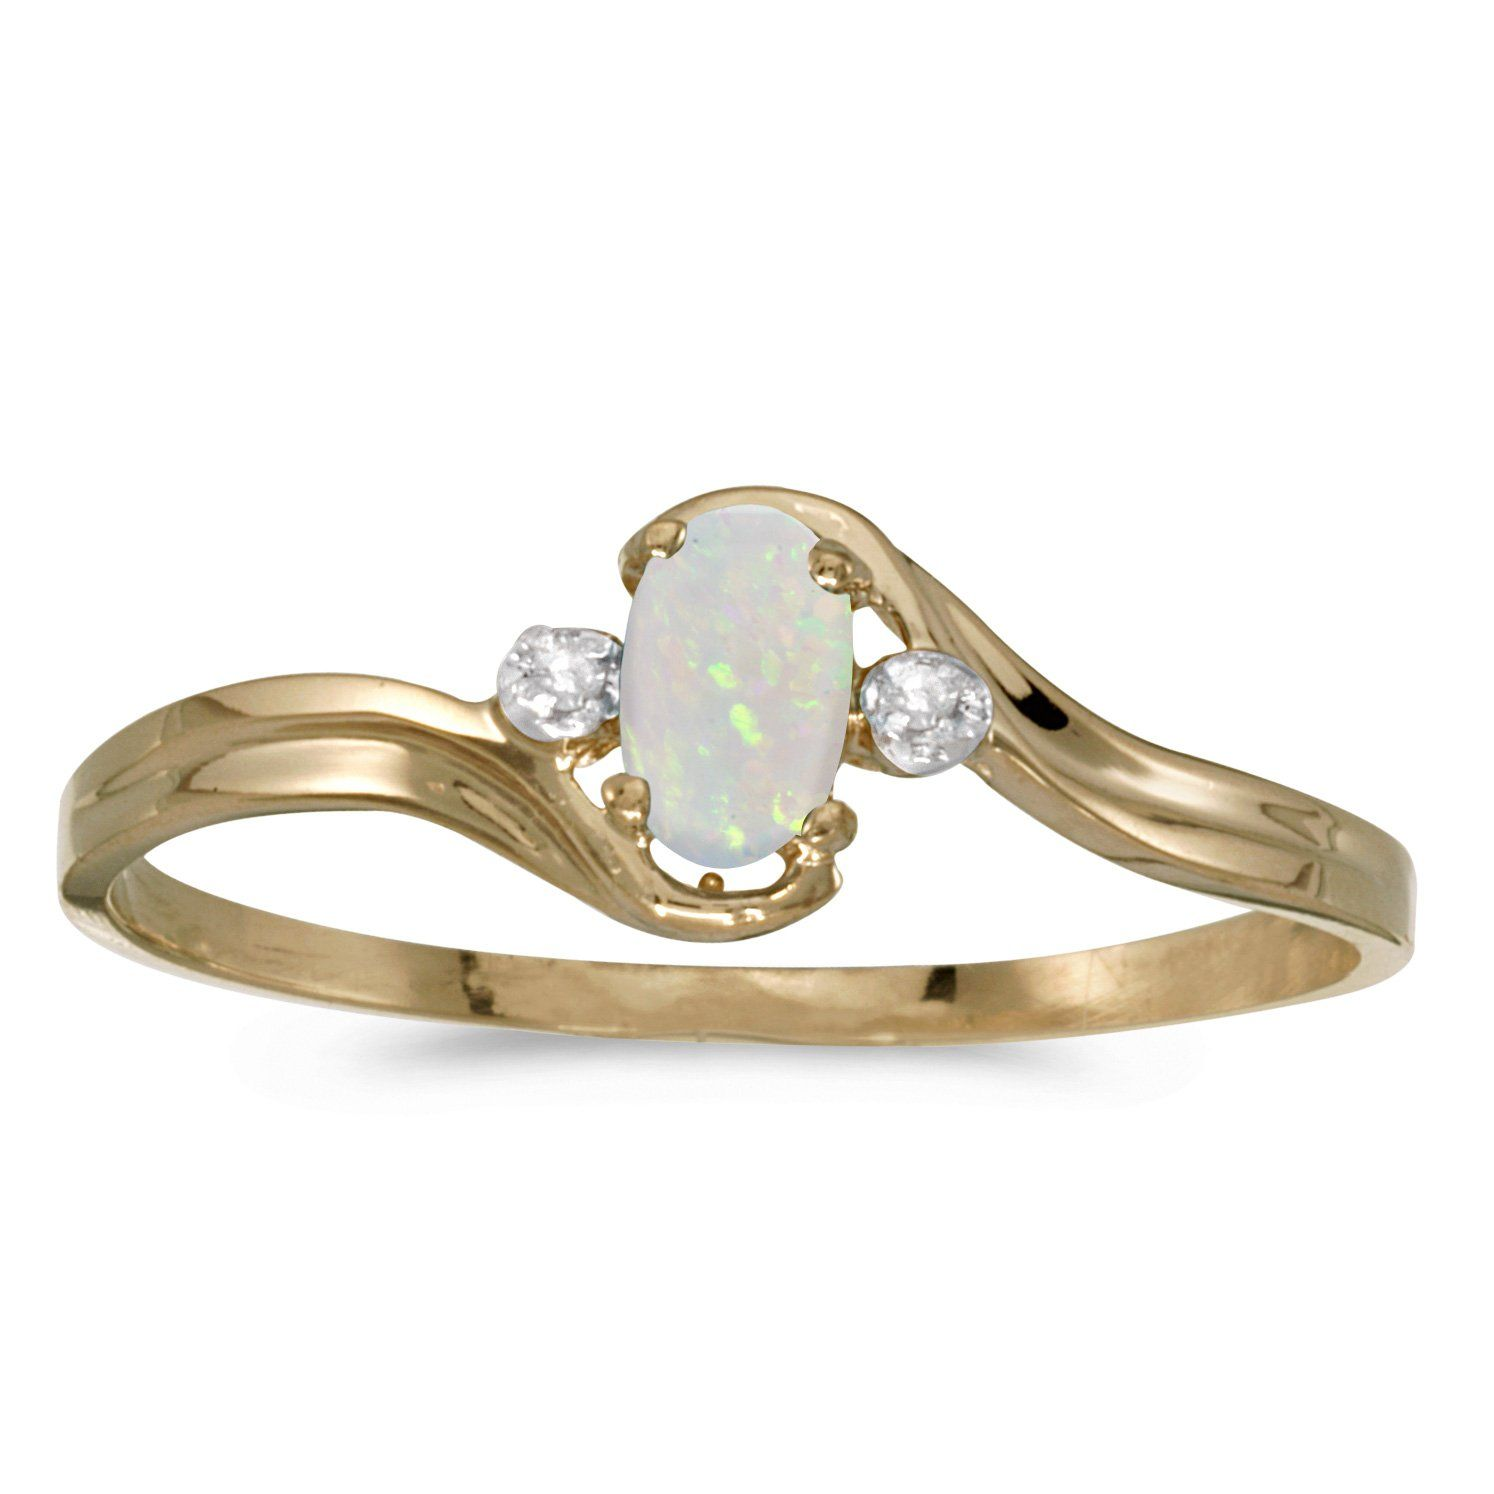 0.09 Carat ctw 10k Gold Oval White Opal Solitaire & Diamond Accent Bypass Swirl Fashion Promise Ring - Yellow-gold, Size 7